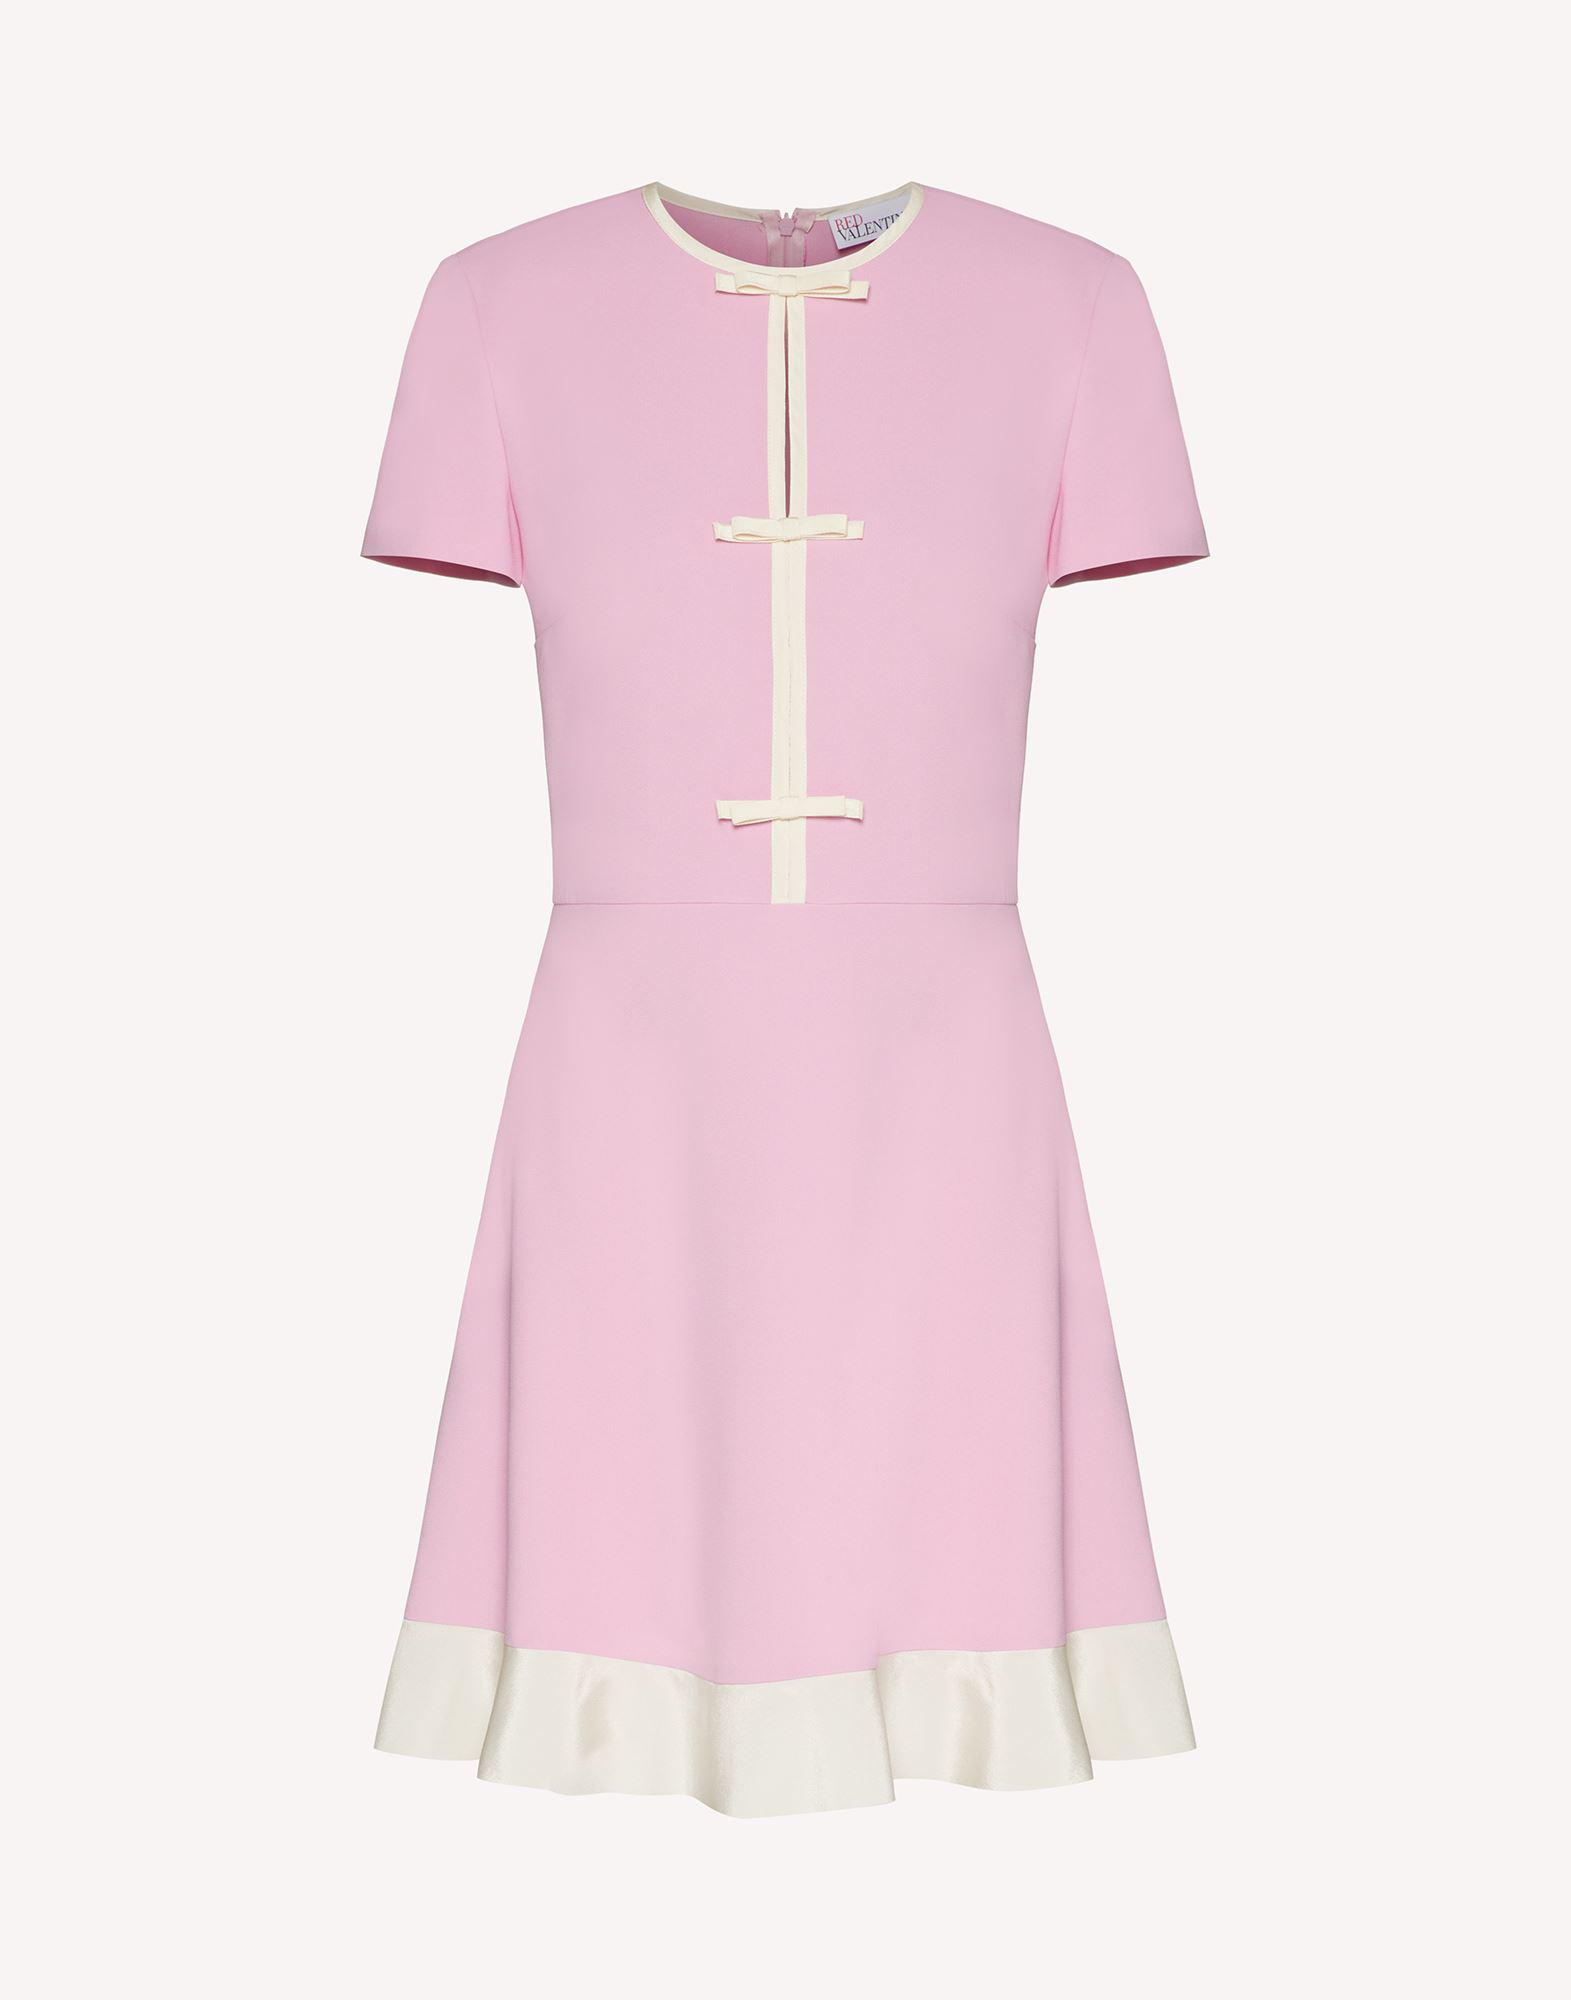 STRETCH FRISOTTINE DRESS WITH BOW DETAILS 4